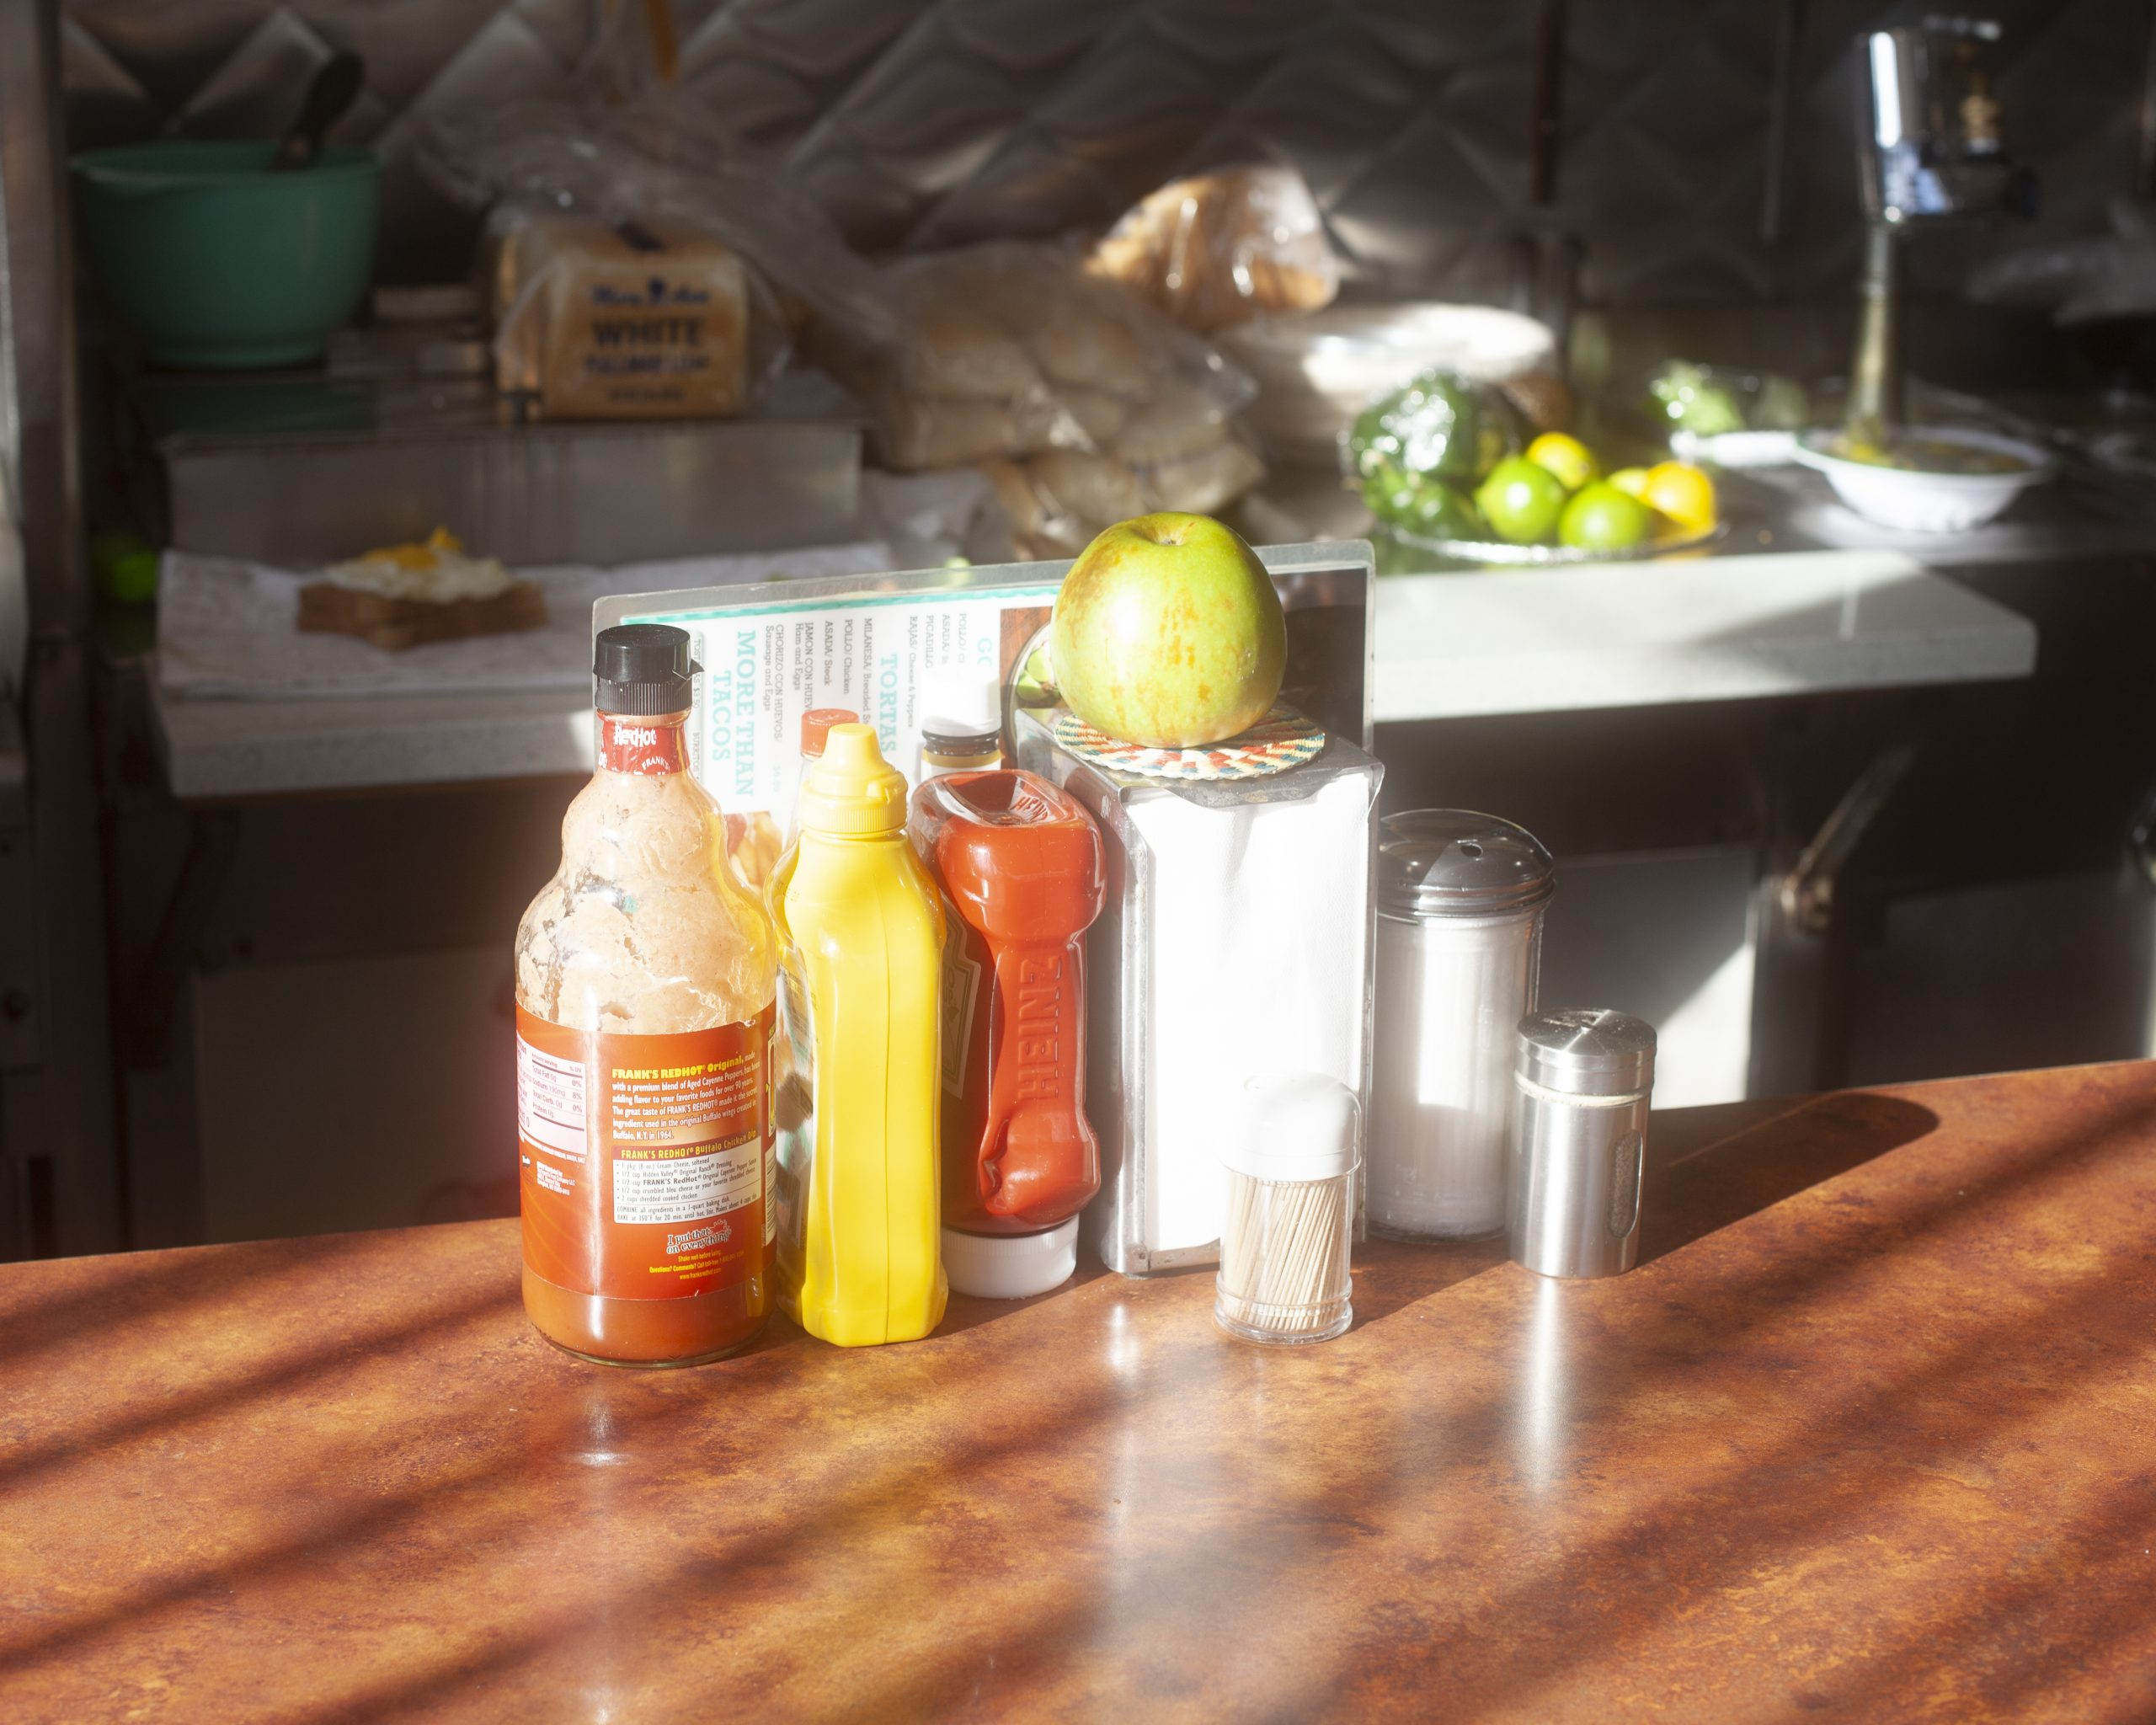 The condiments on the counter at Park View Diner have long gone unused during the pandemic.